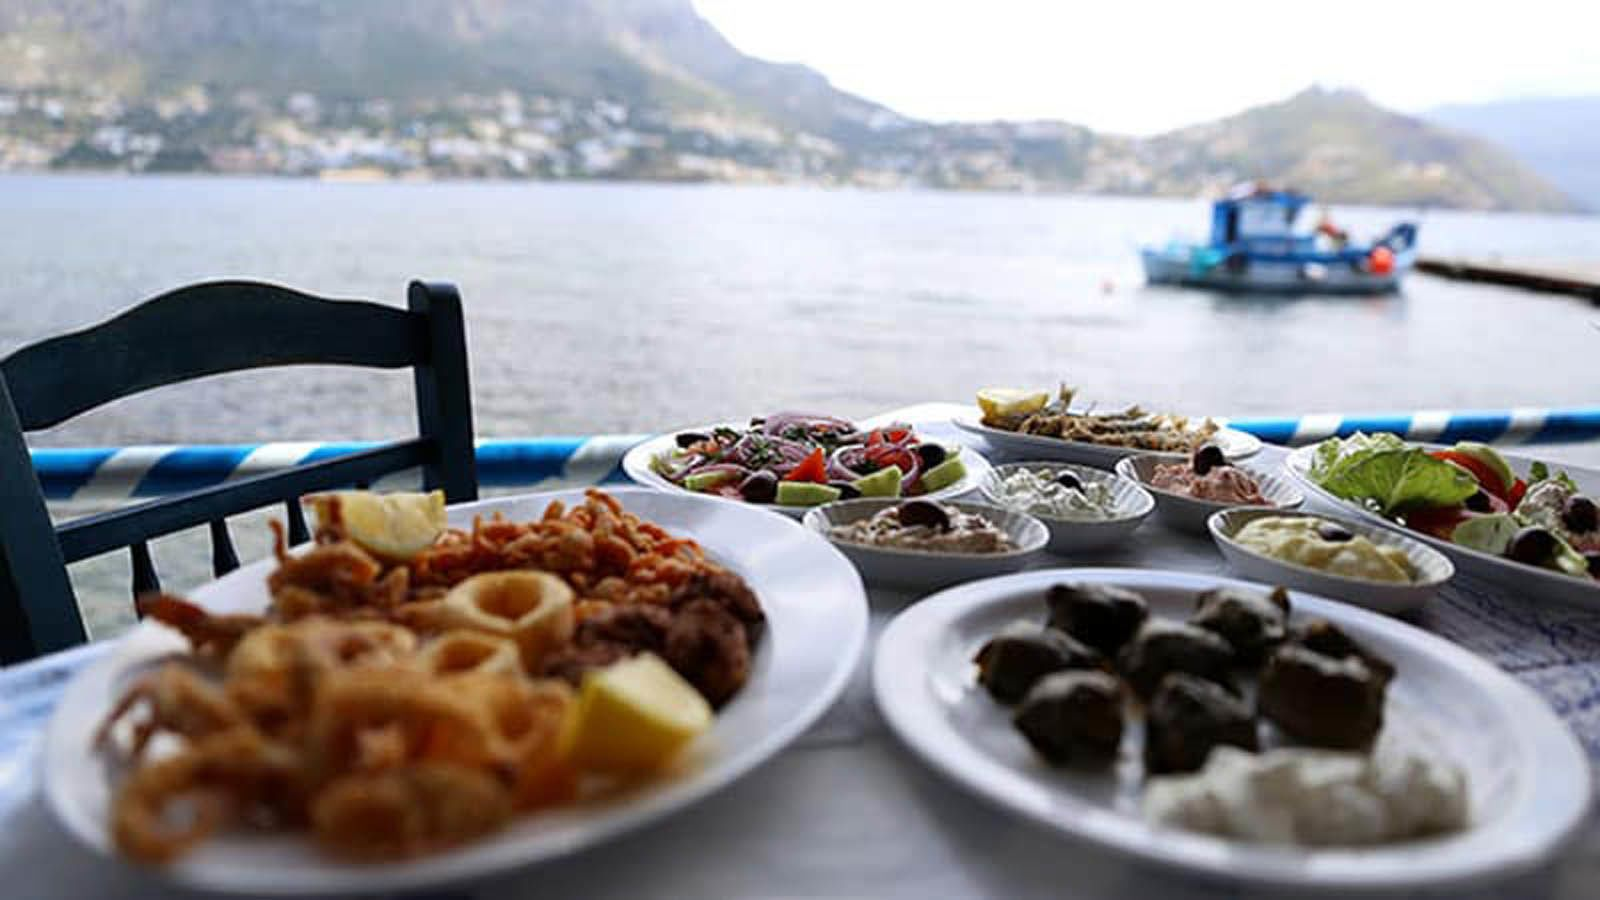 What To Eat In Zante